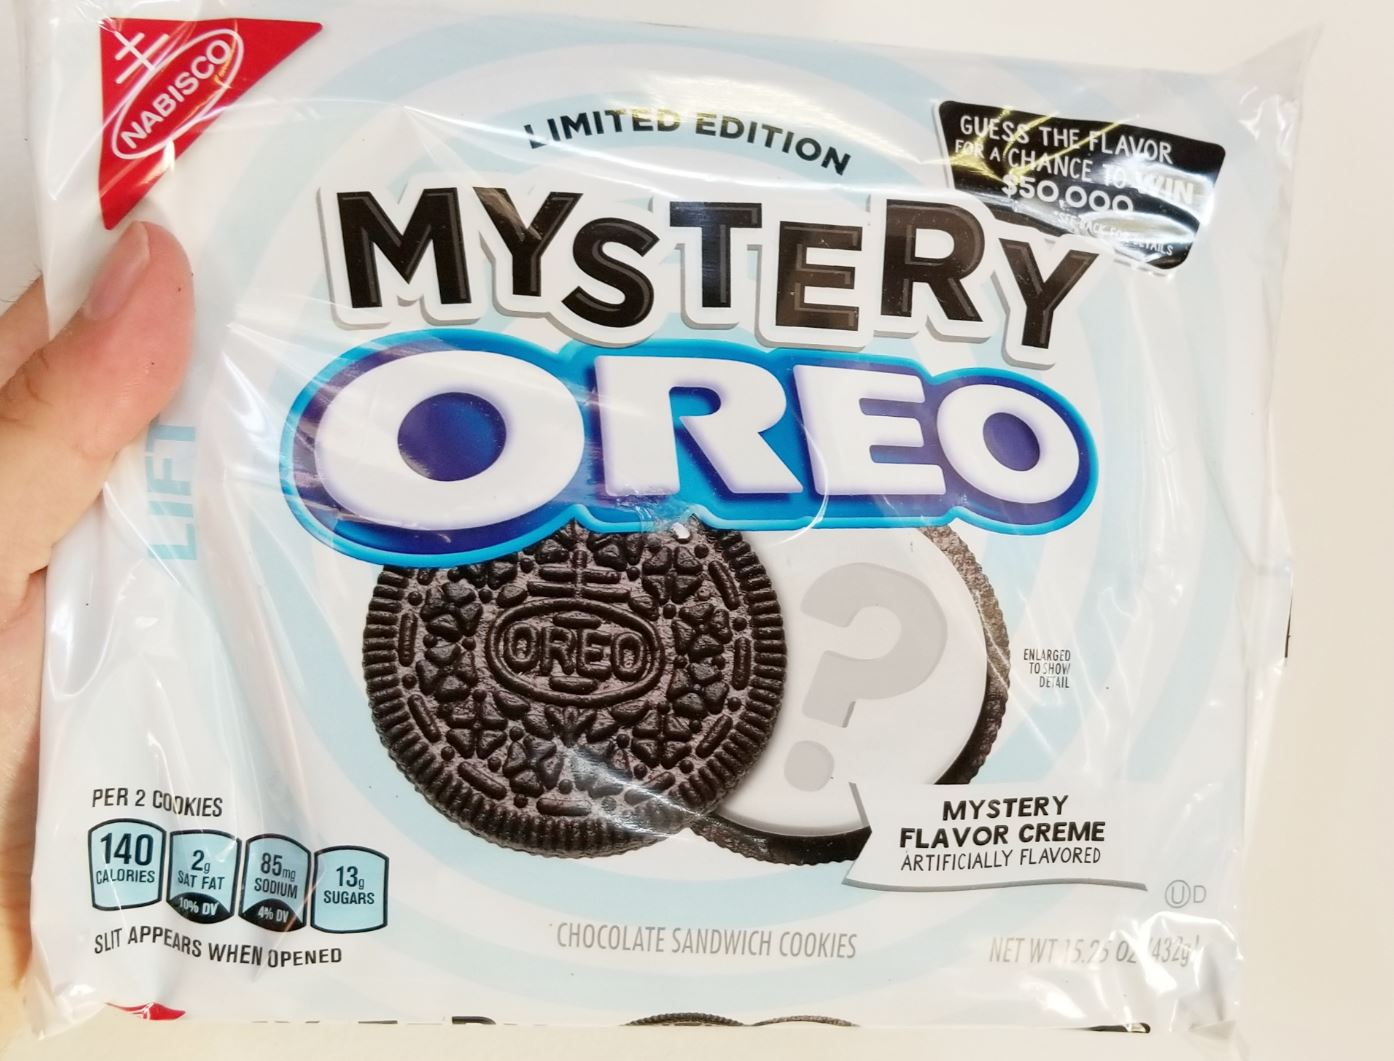 New Mystery Oreo packaging